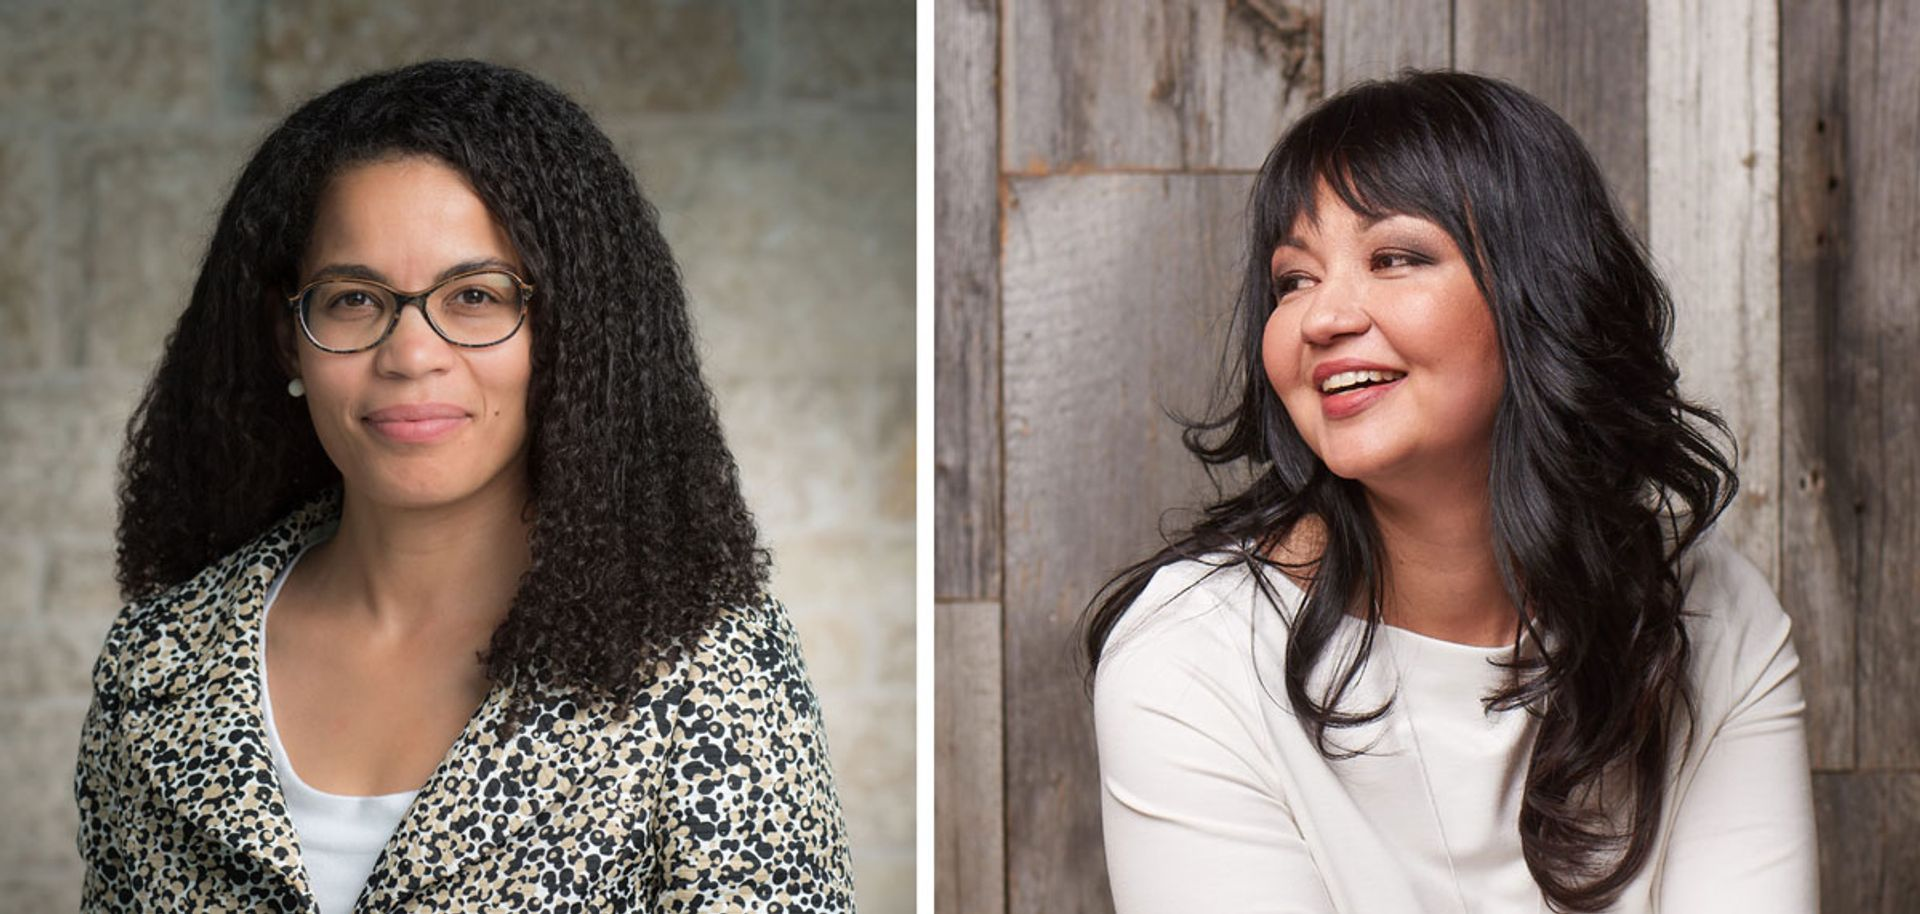 Angela Cassie, left, is the new vice-president of strategic transformation and inclusion, while Tania Lafrenière is the new senior vice-president of people, culture and belonging